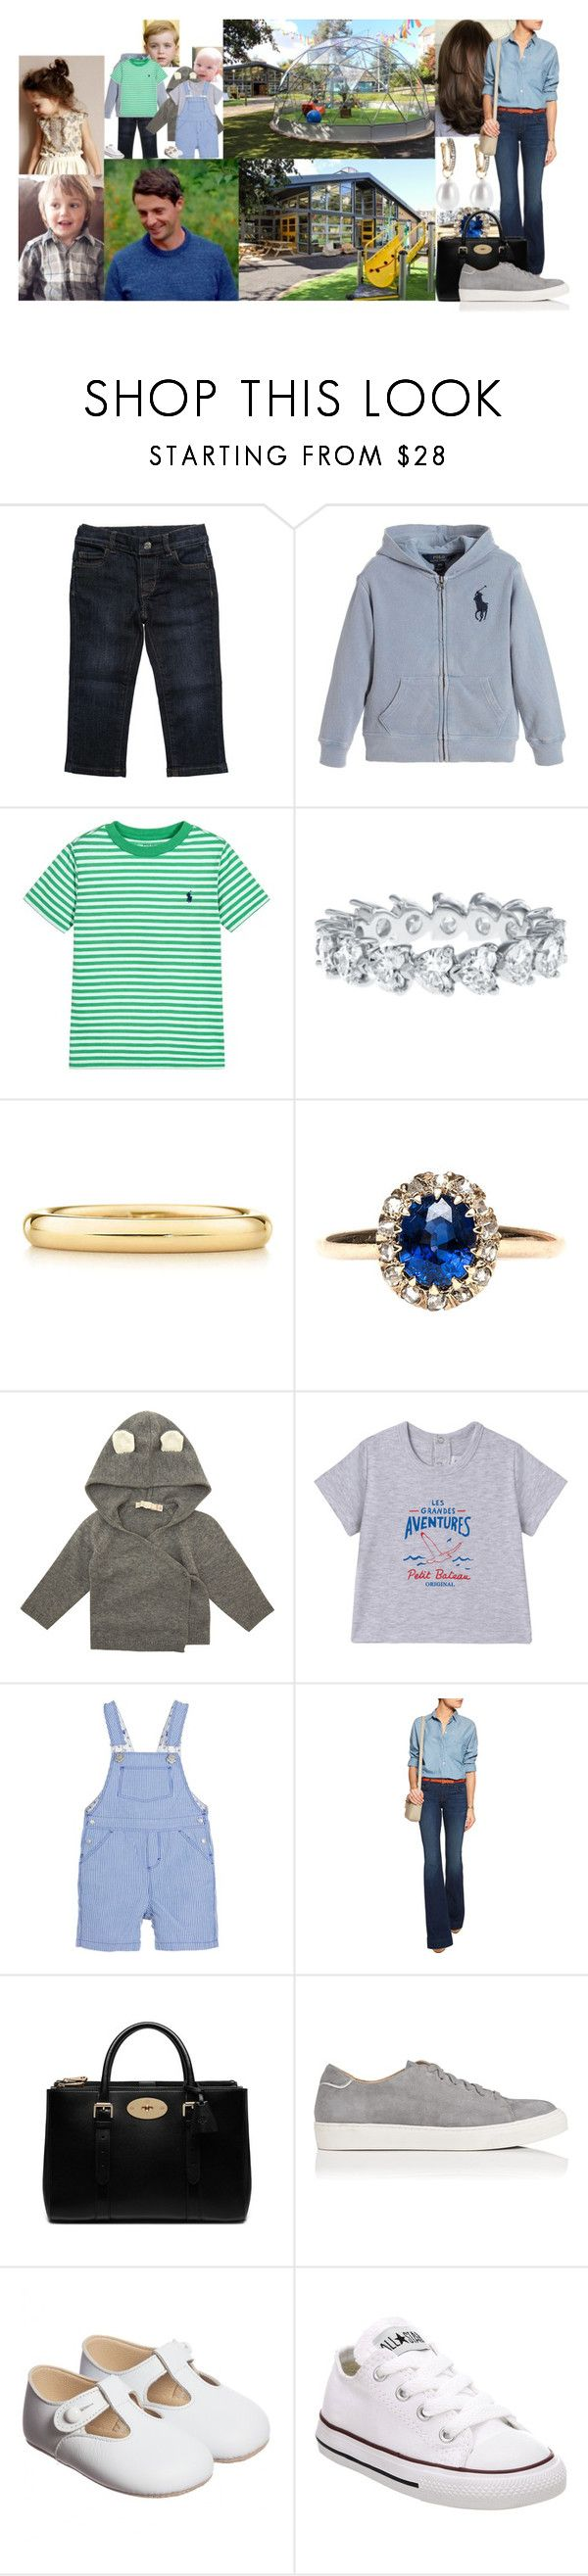 """""""Taking the kids including Jamie and Cecilia to The Yard in Edinburgh for the day"""" by lady-maud ❤ liked on Polyvore featuring Gucci, Annoushka, Elsa Peretti, Petit Bateau, J Brand, Mulberry and Converse"""